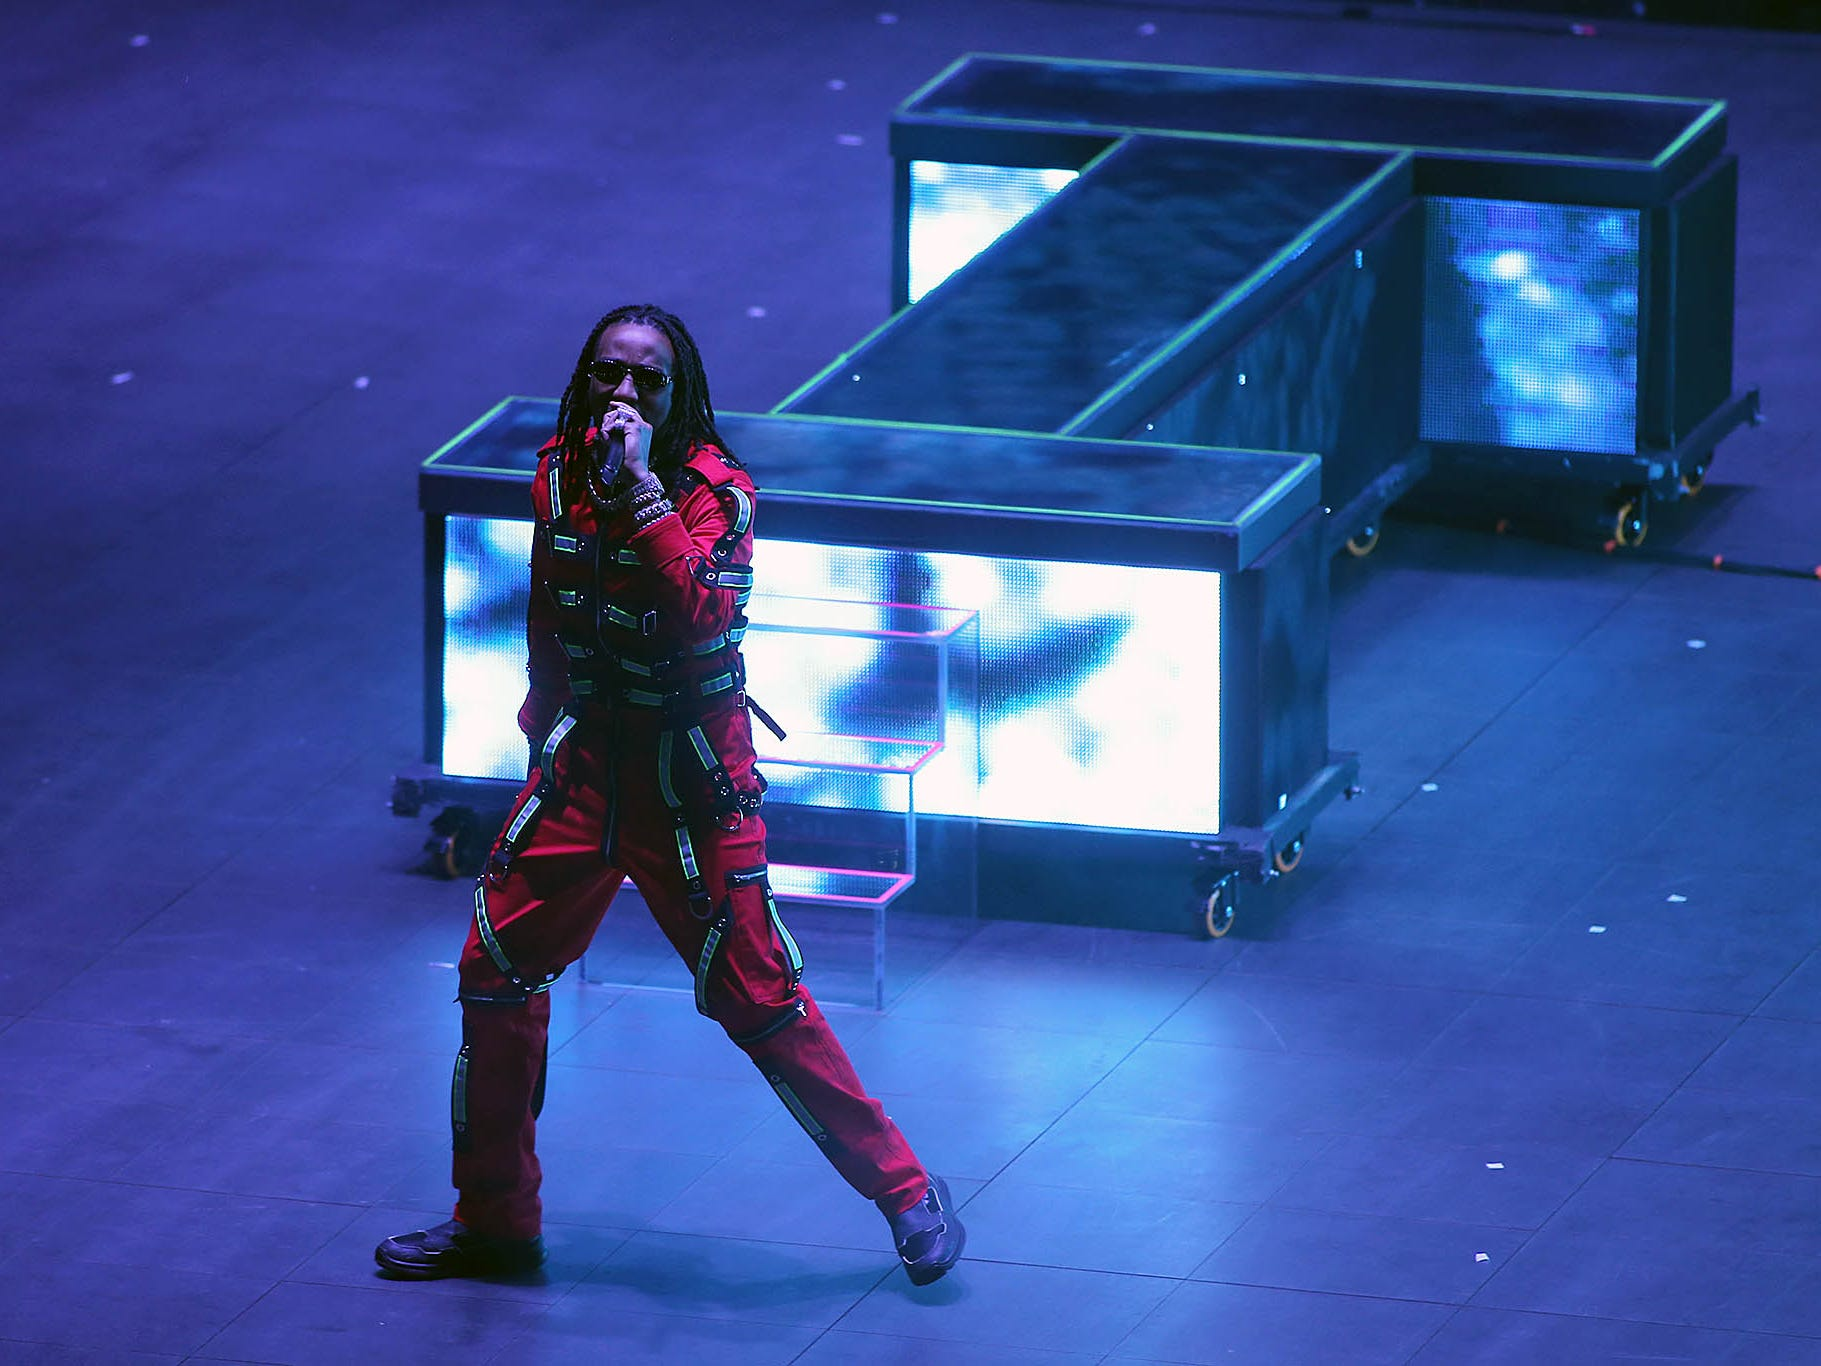 The Three Migos perform during Drake's Aubrey & The Three Migos Tour at Gila River Arena in Glendale on Monday, Oct. 8, 2018.